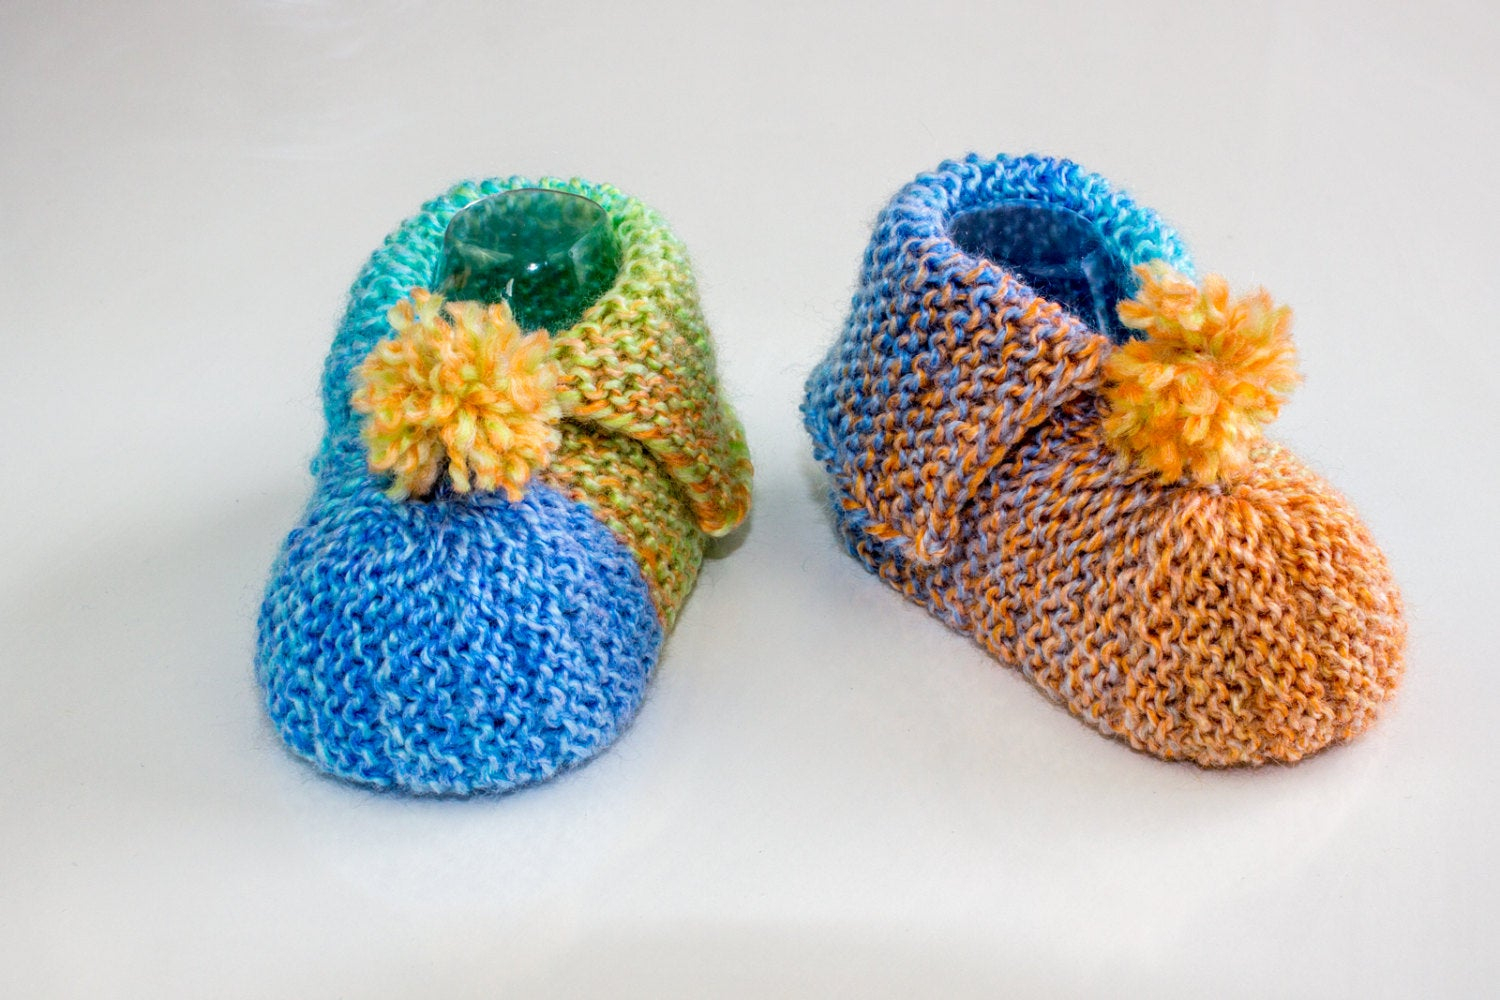 Basic Baby Booties Knitting Pattern Knitting Pattern Pdf Super Easy Ba Booties Garter Stitch Booties Knitting Pattern Beginners Pattern Easy Booties Pattern